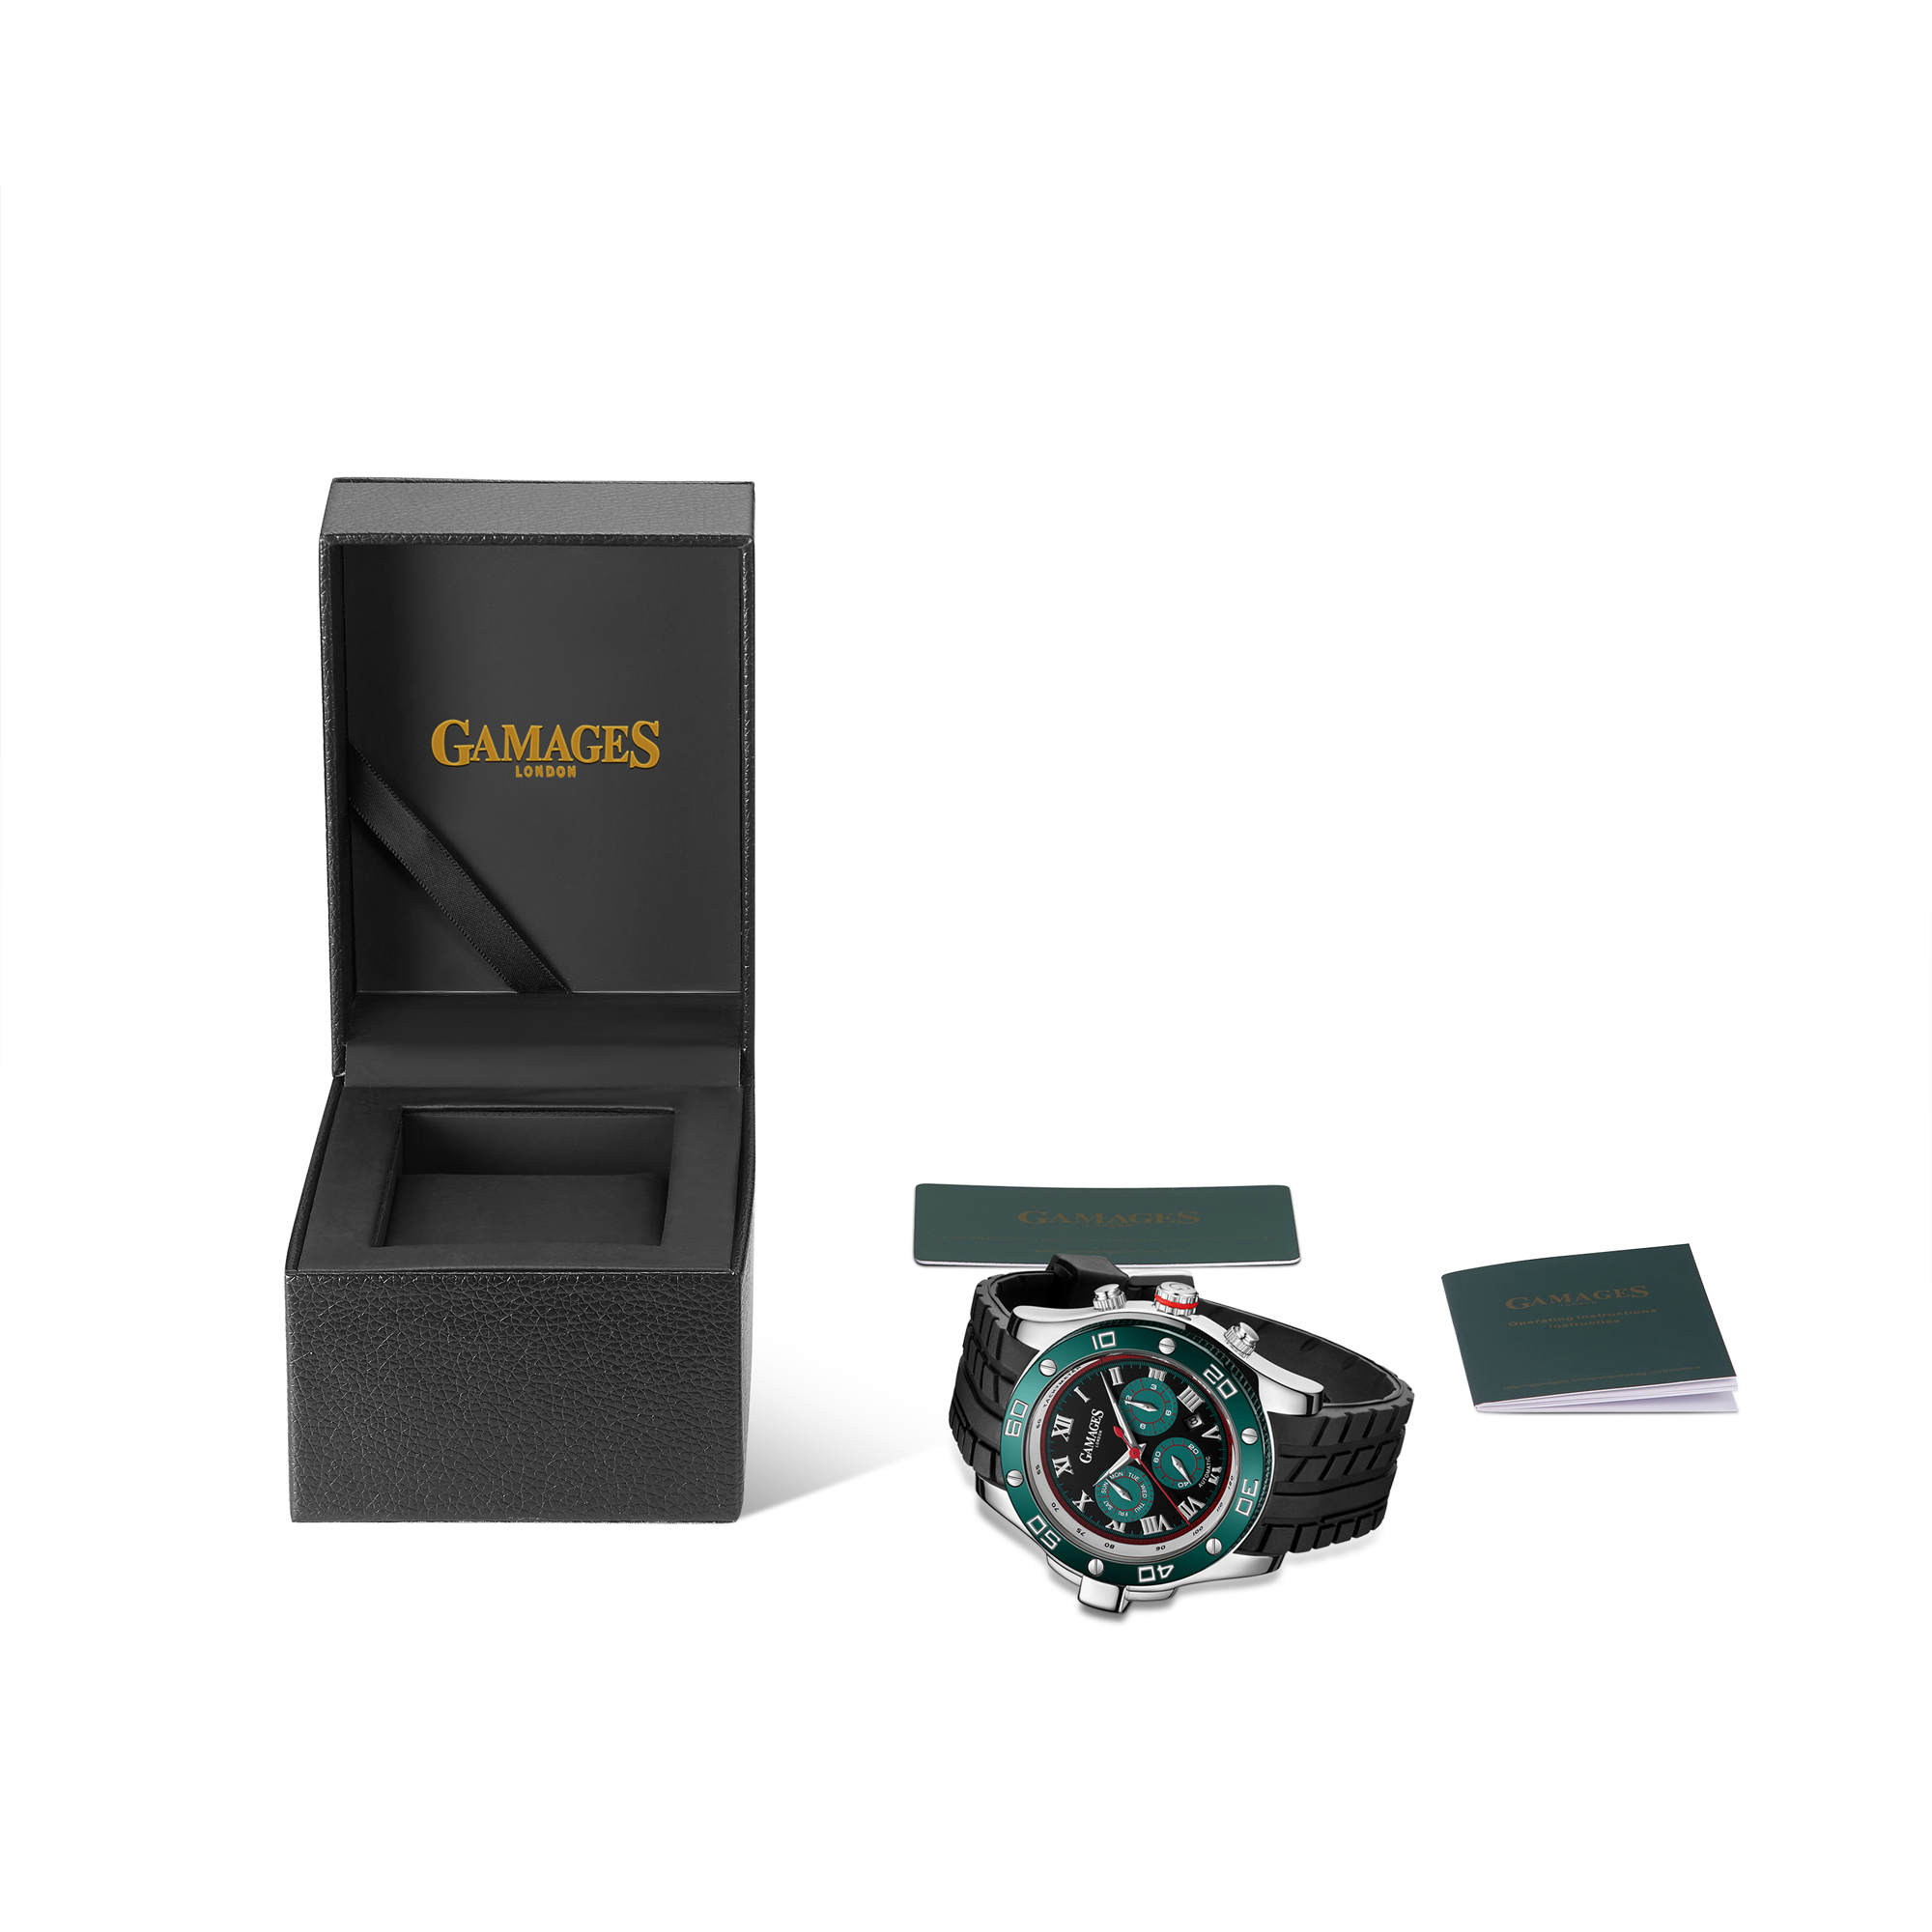 Ltd Edition Hand Assembled Gamages Driver Automatic Black – 5 Year Warranty & Free Delivery - Image 2 of 5